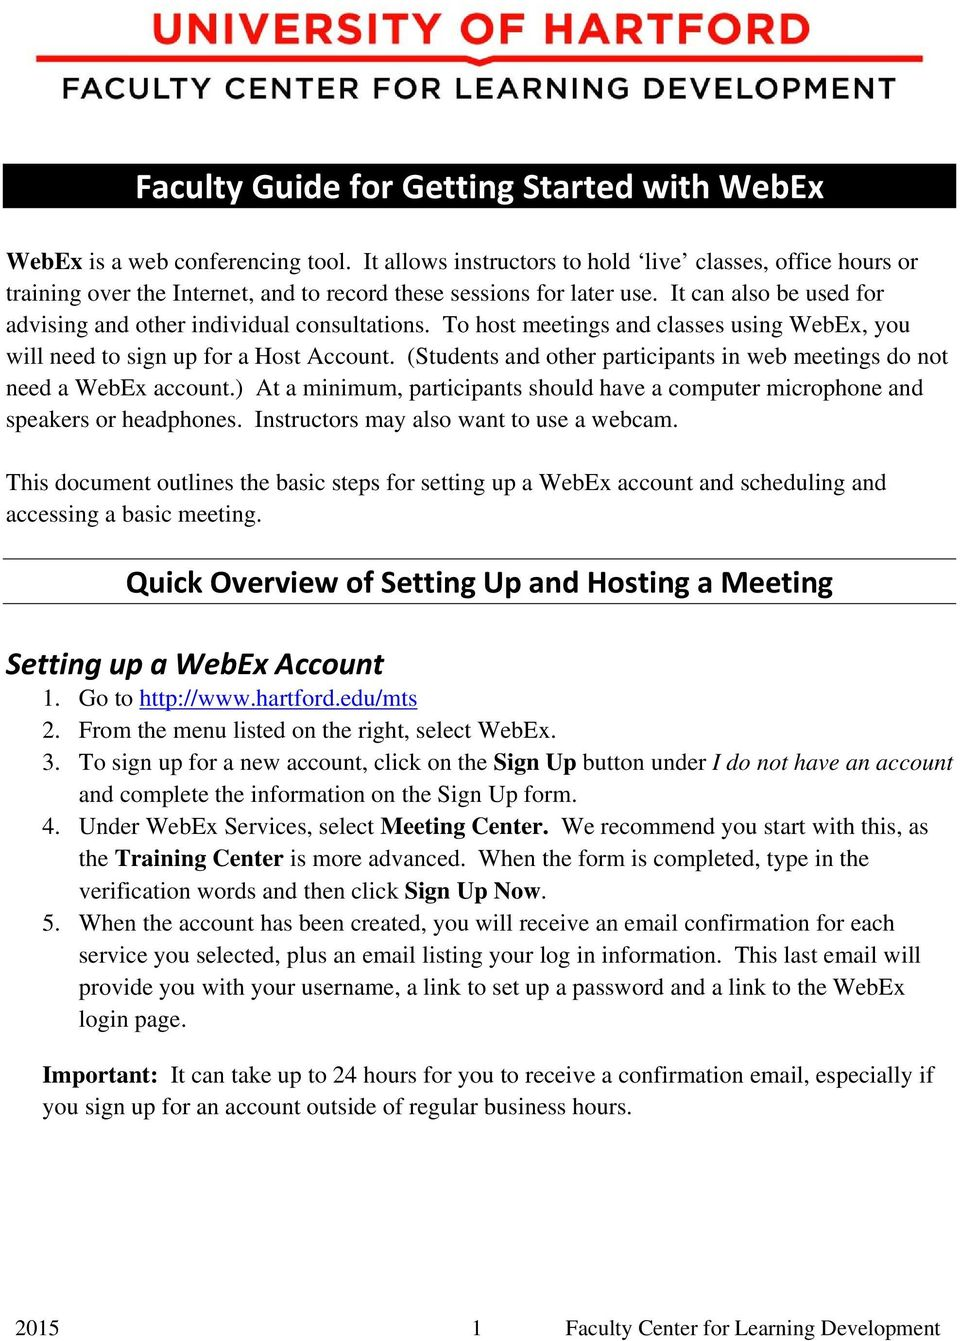 To host meetings and classes using WebEx, you will need to sign up for a Host Account. (Students and other participants in web meetings do not need a WebEx account.